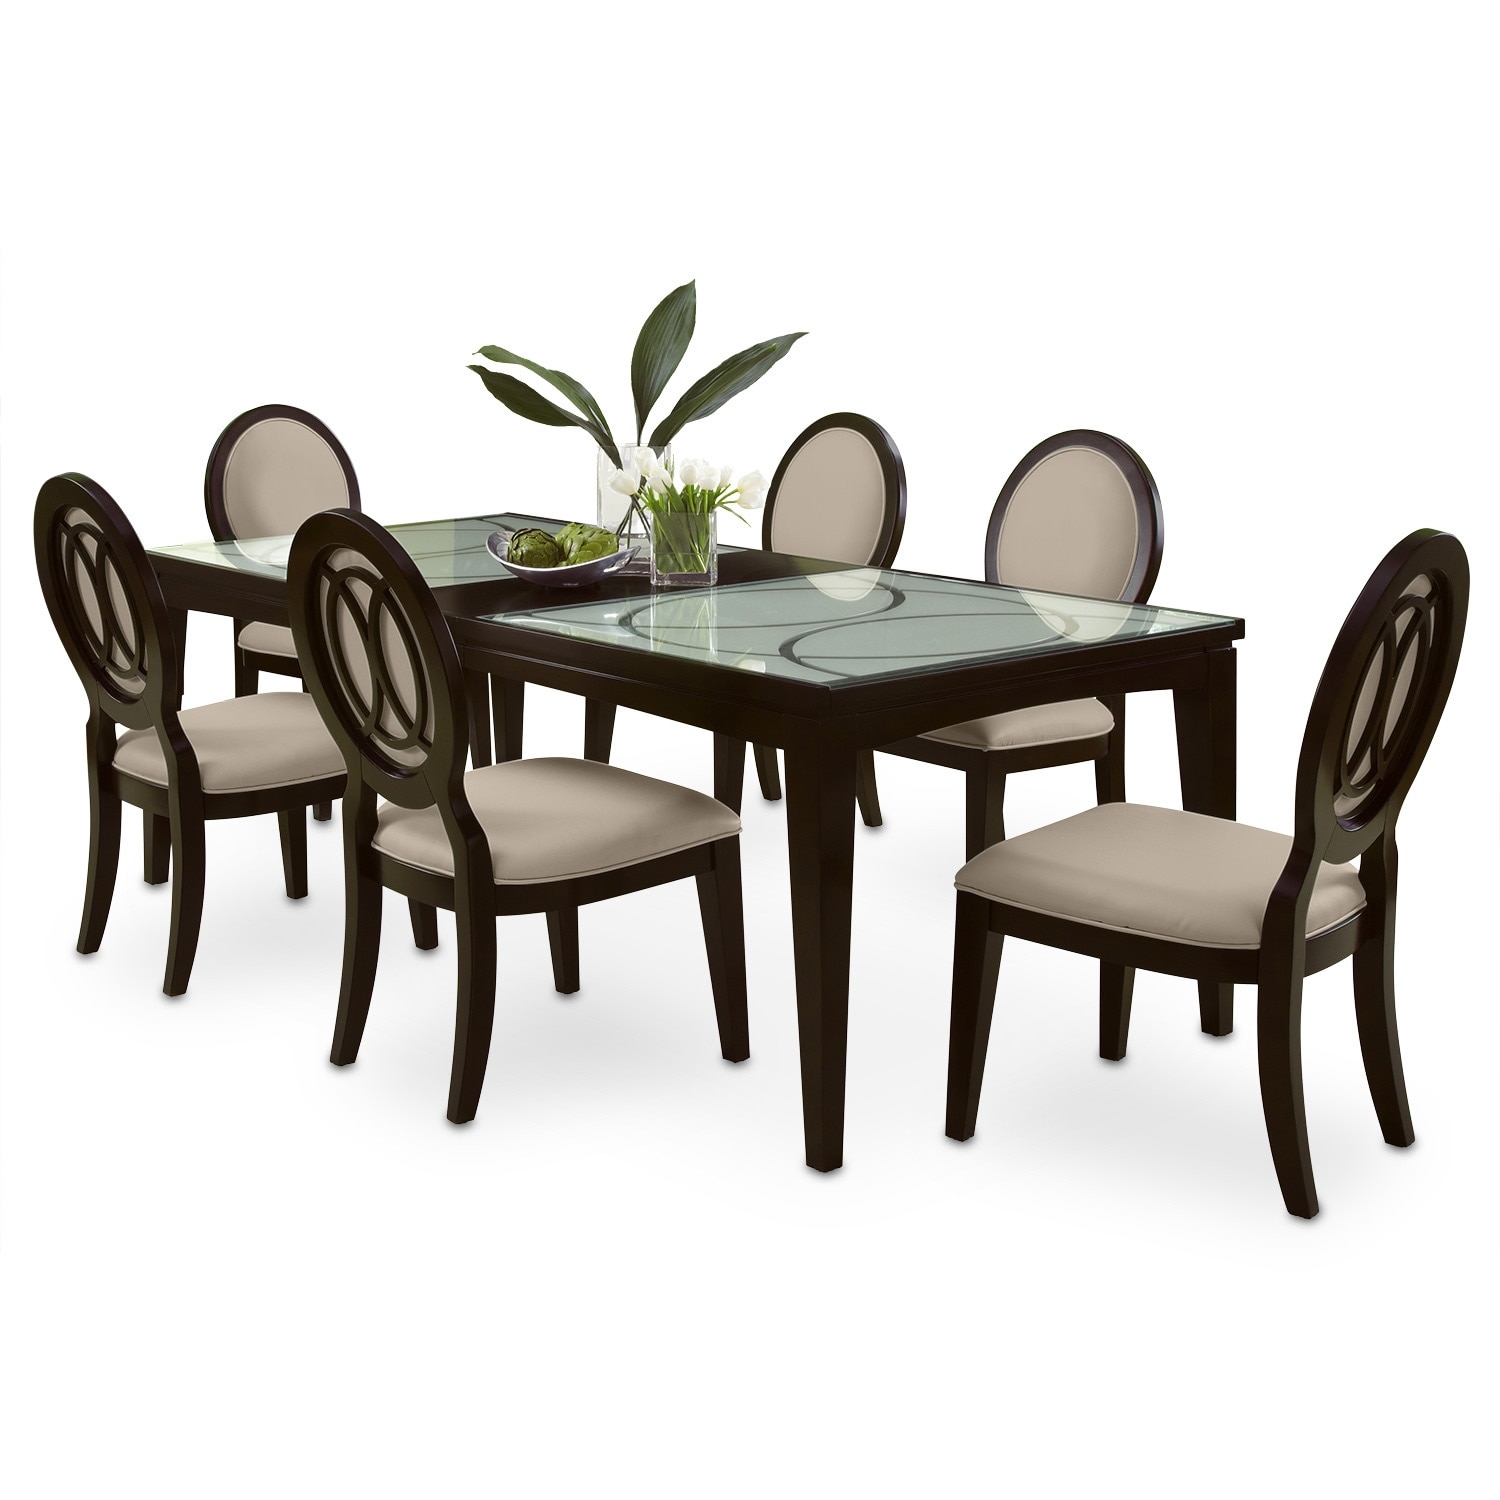 Dining Room Furniture - Cosmo 7 Pc. Dining Room